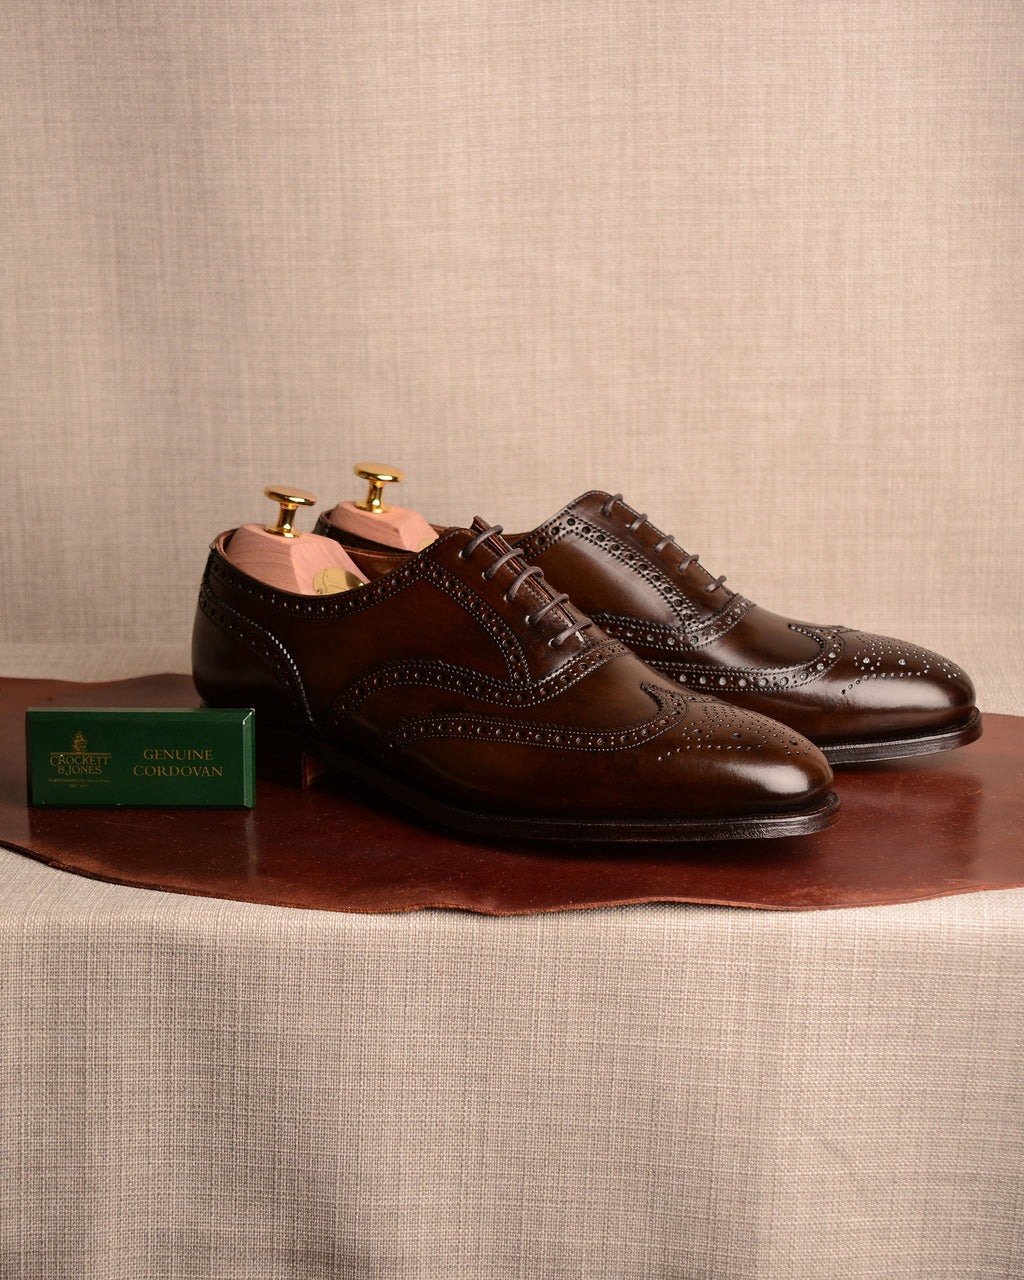 Crockett & Jones London 2 - Dark Brown Cordovan